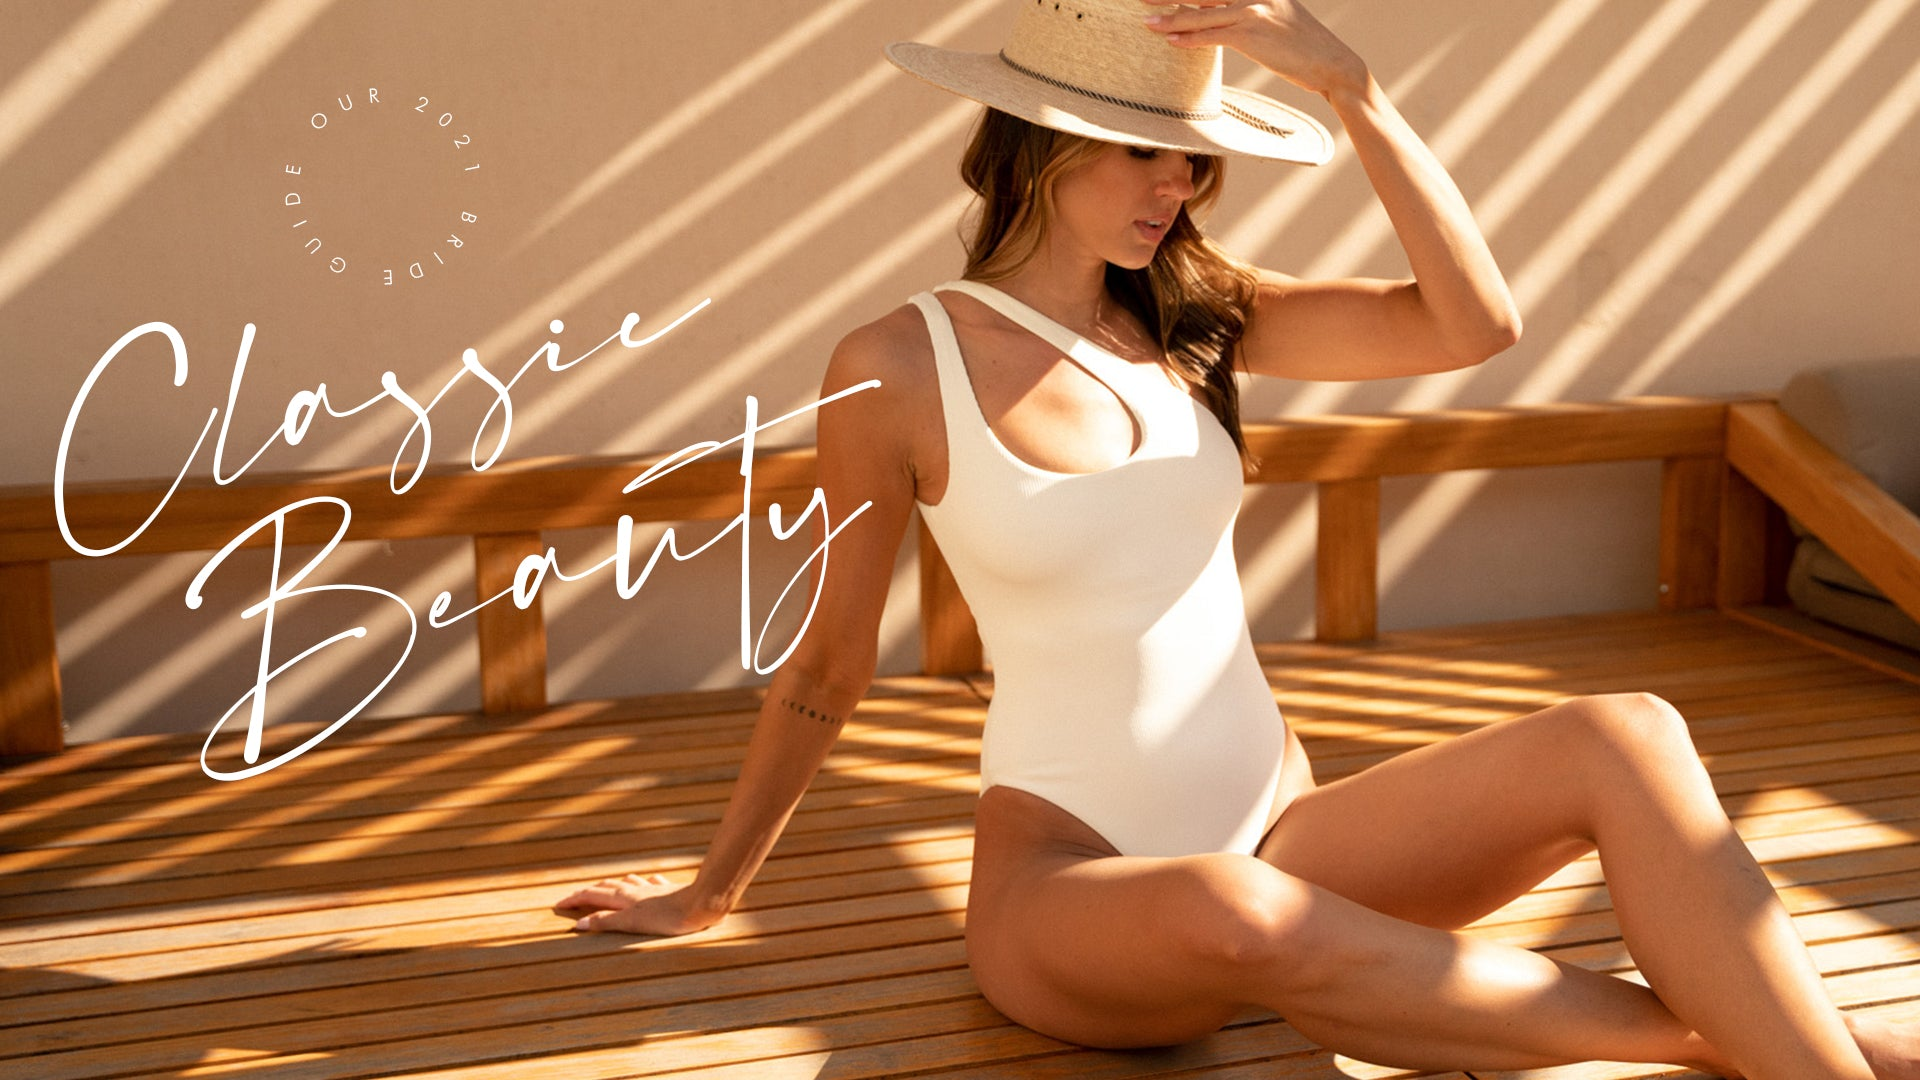 text graphic of a woman in a white bathing suit